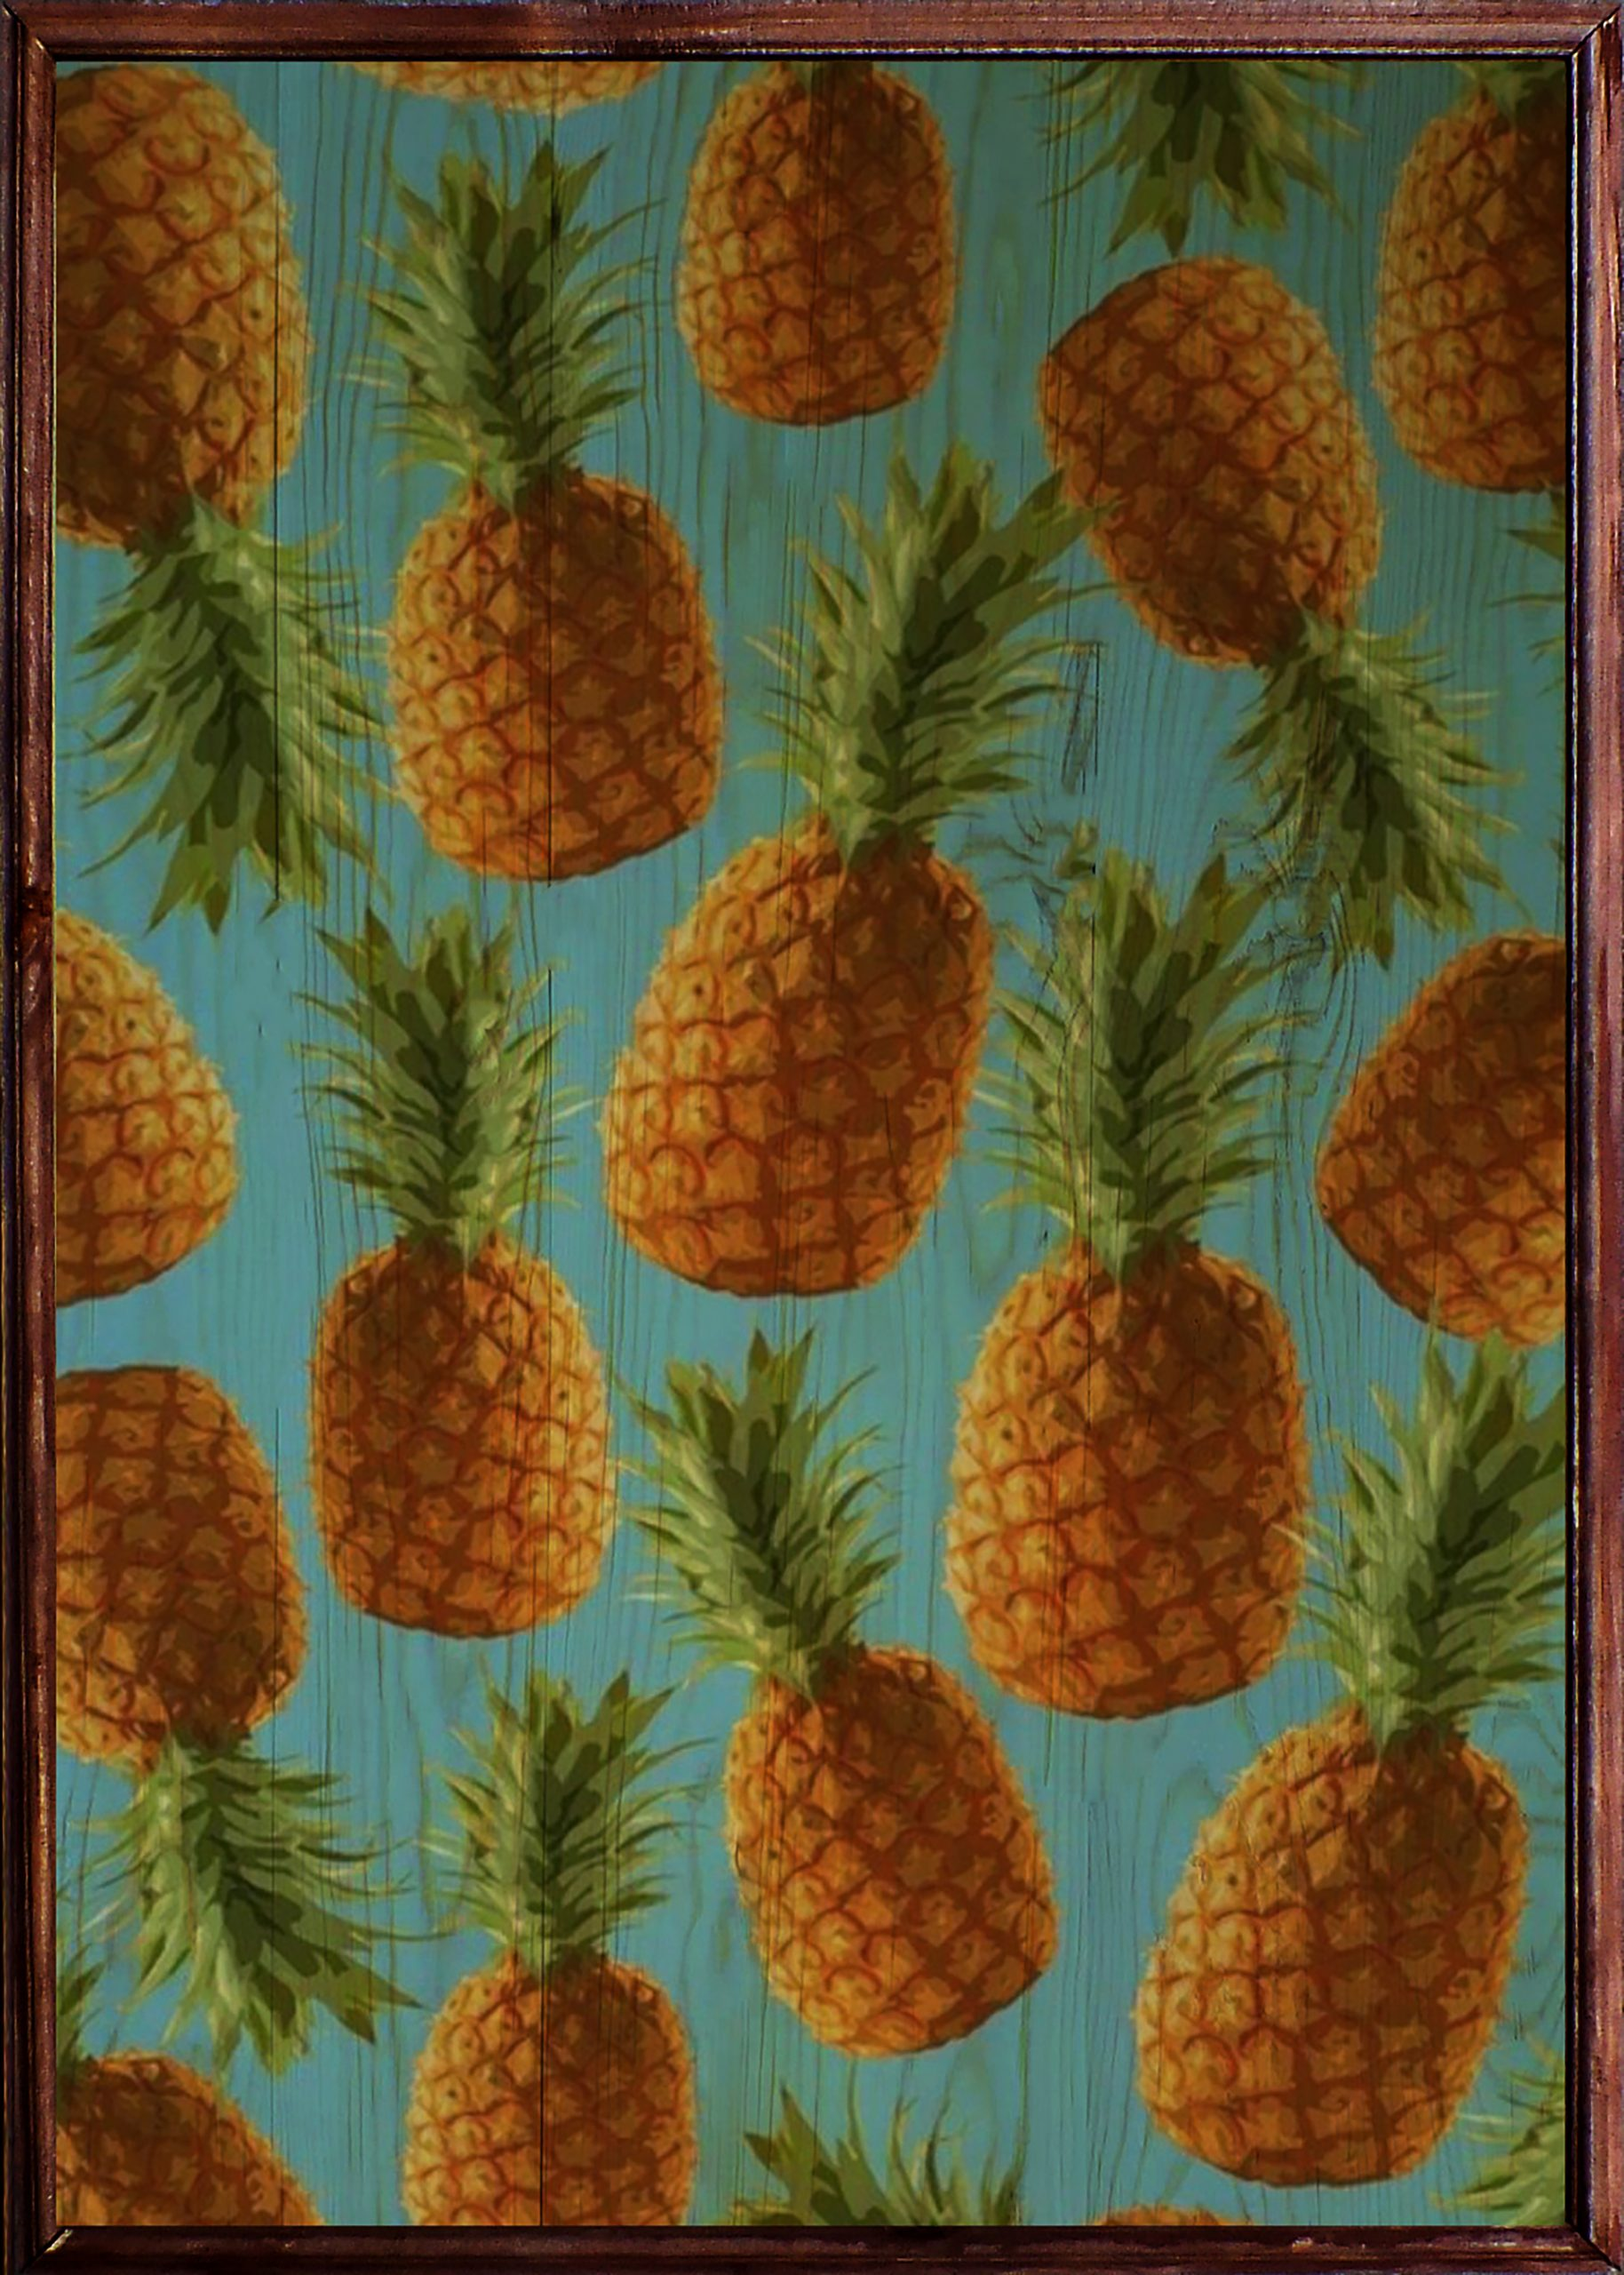 Pineapple Ahşap Tablo